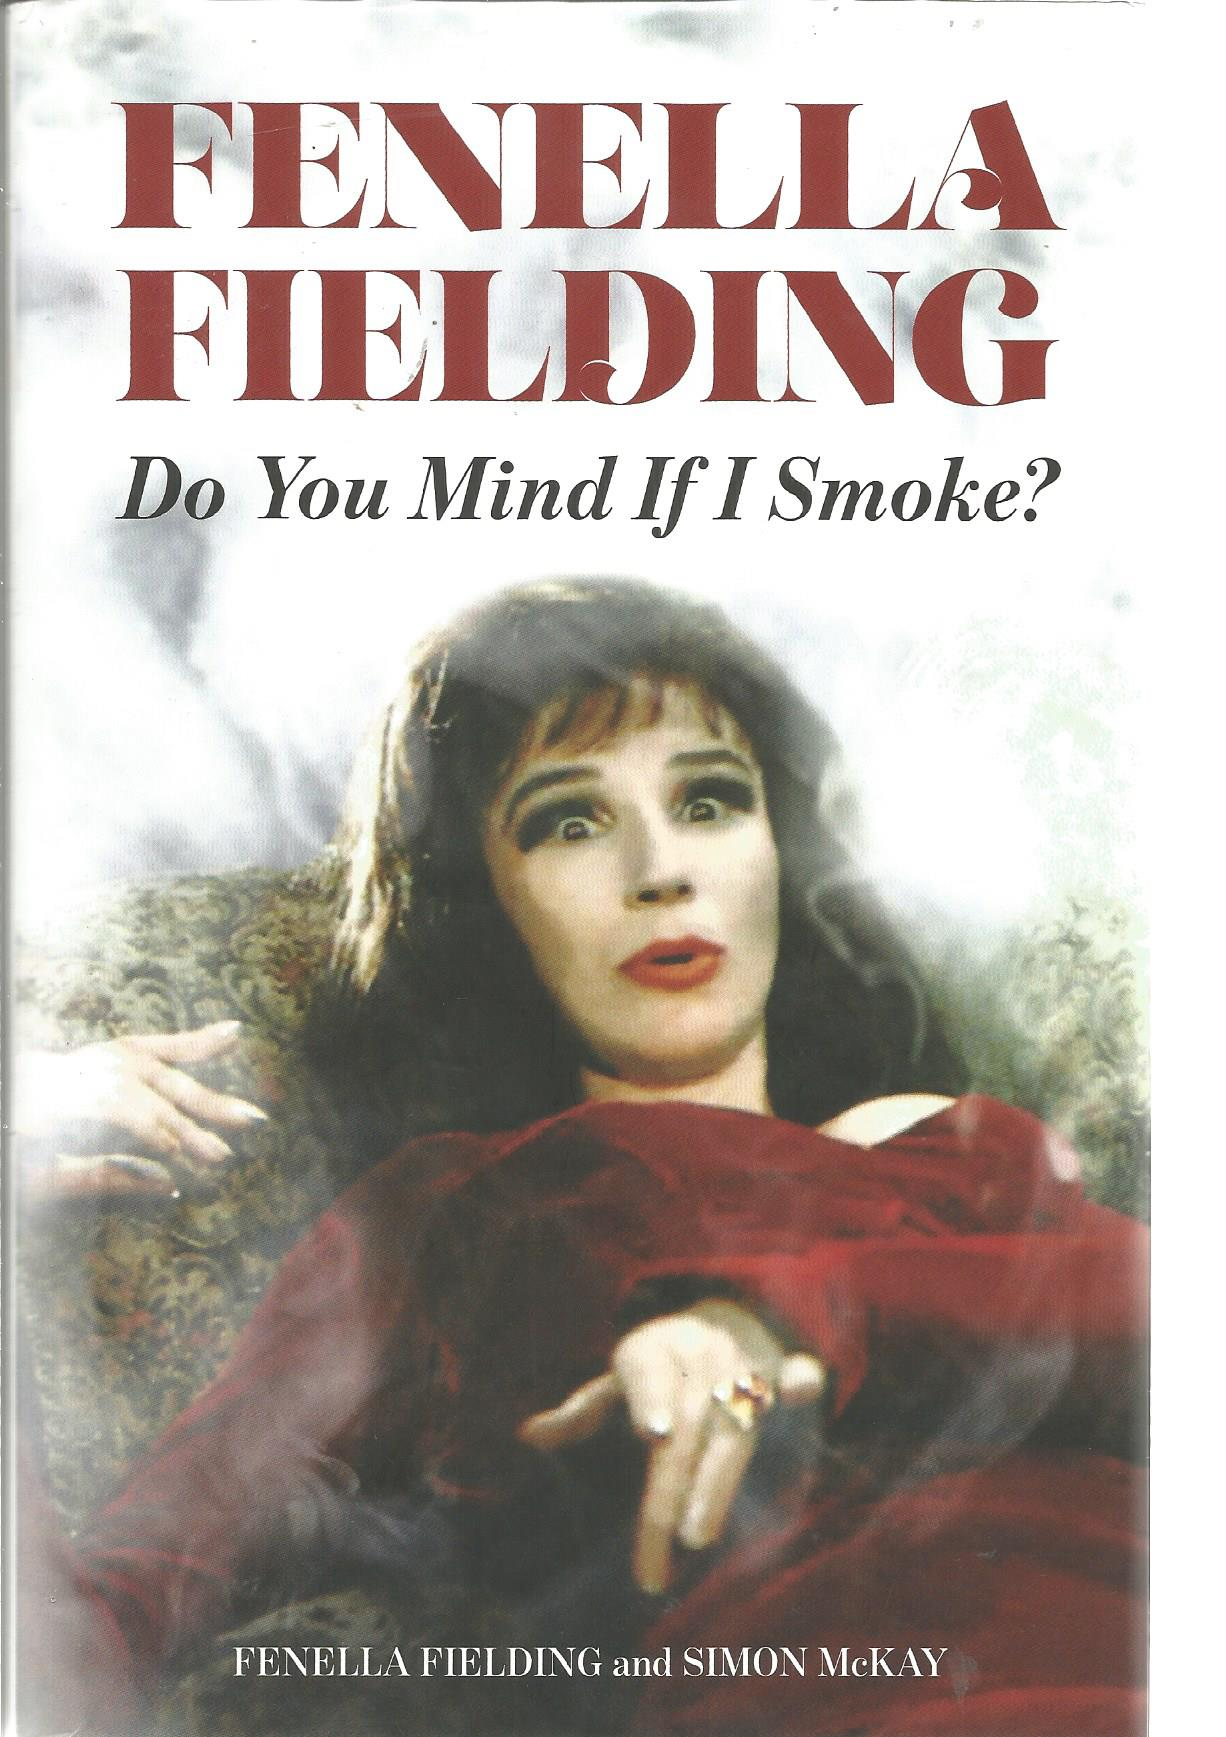 Lot 51 - Fenella Fielding signed Do you mind if I smoke hardback book. Signed on inside title page. Good